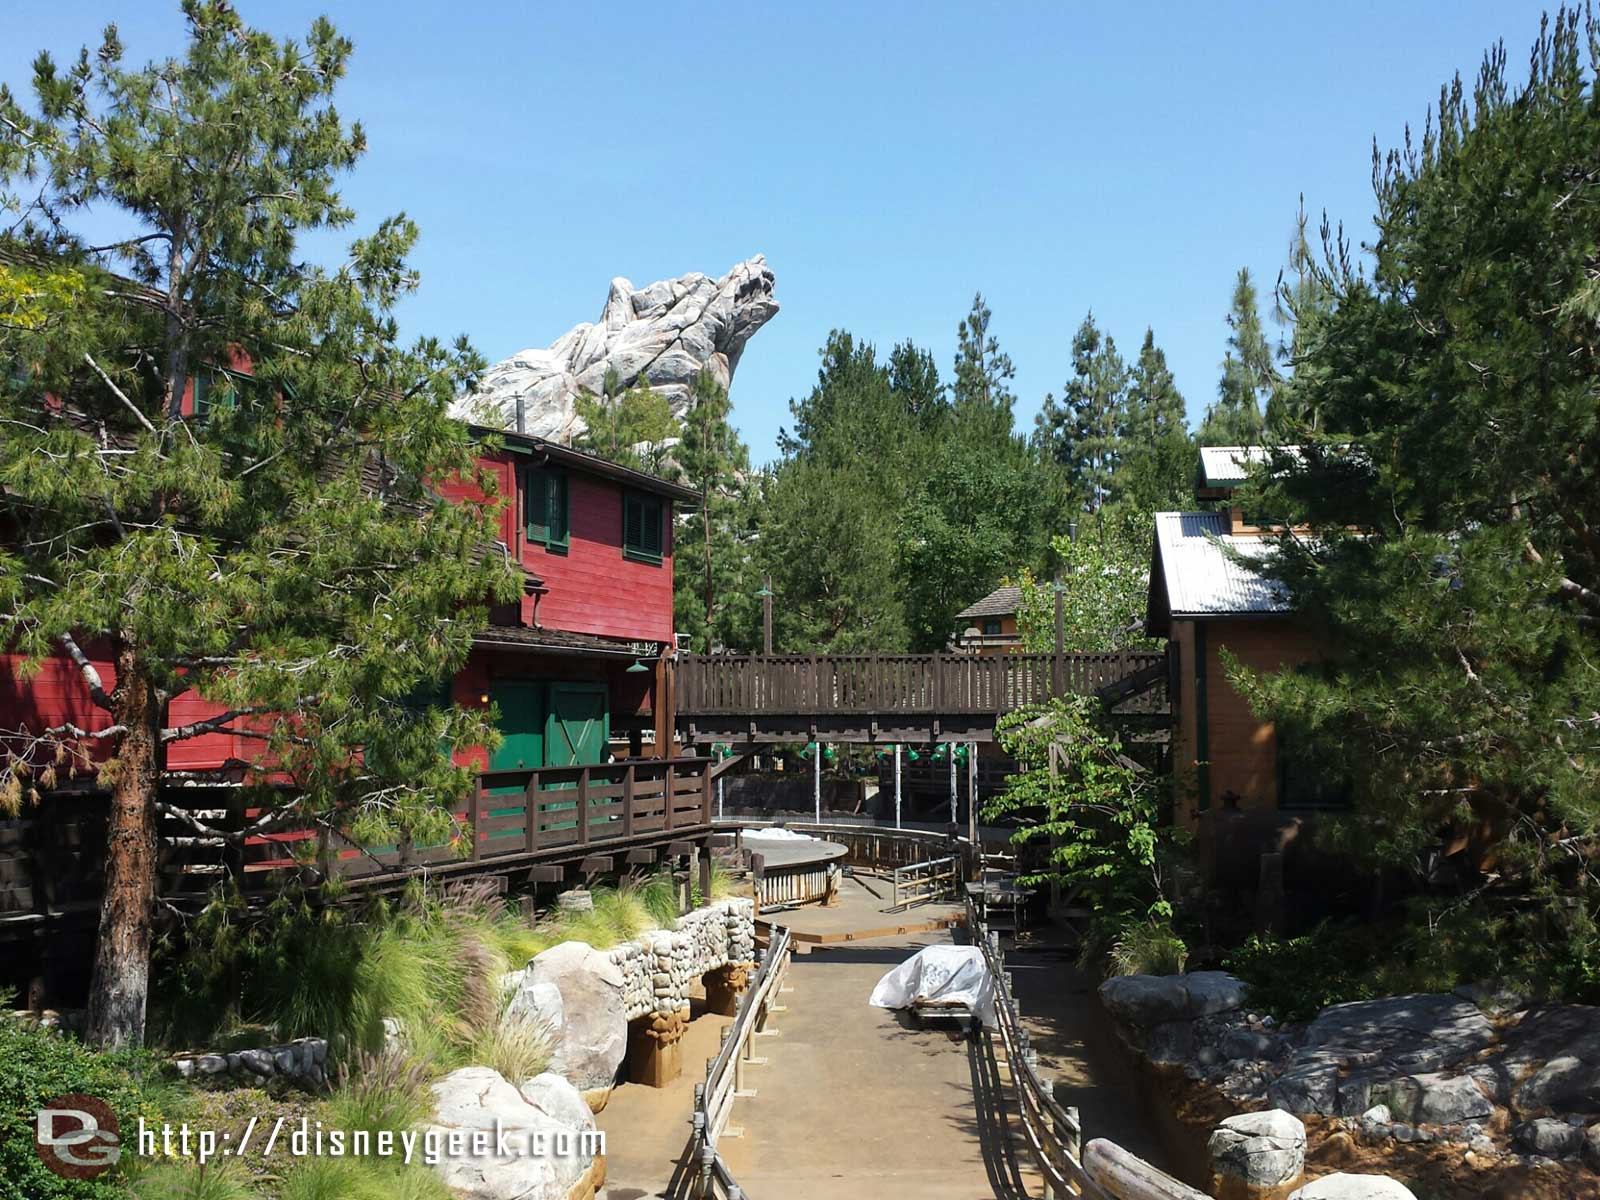 Grizzly River Run is closed still for its annual work